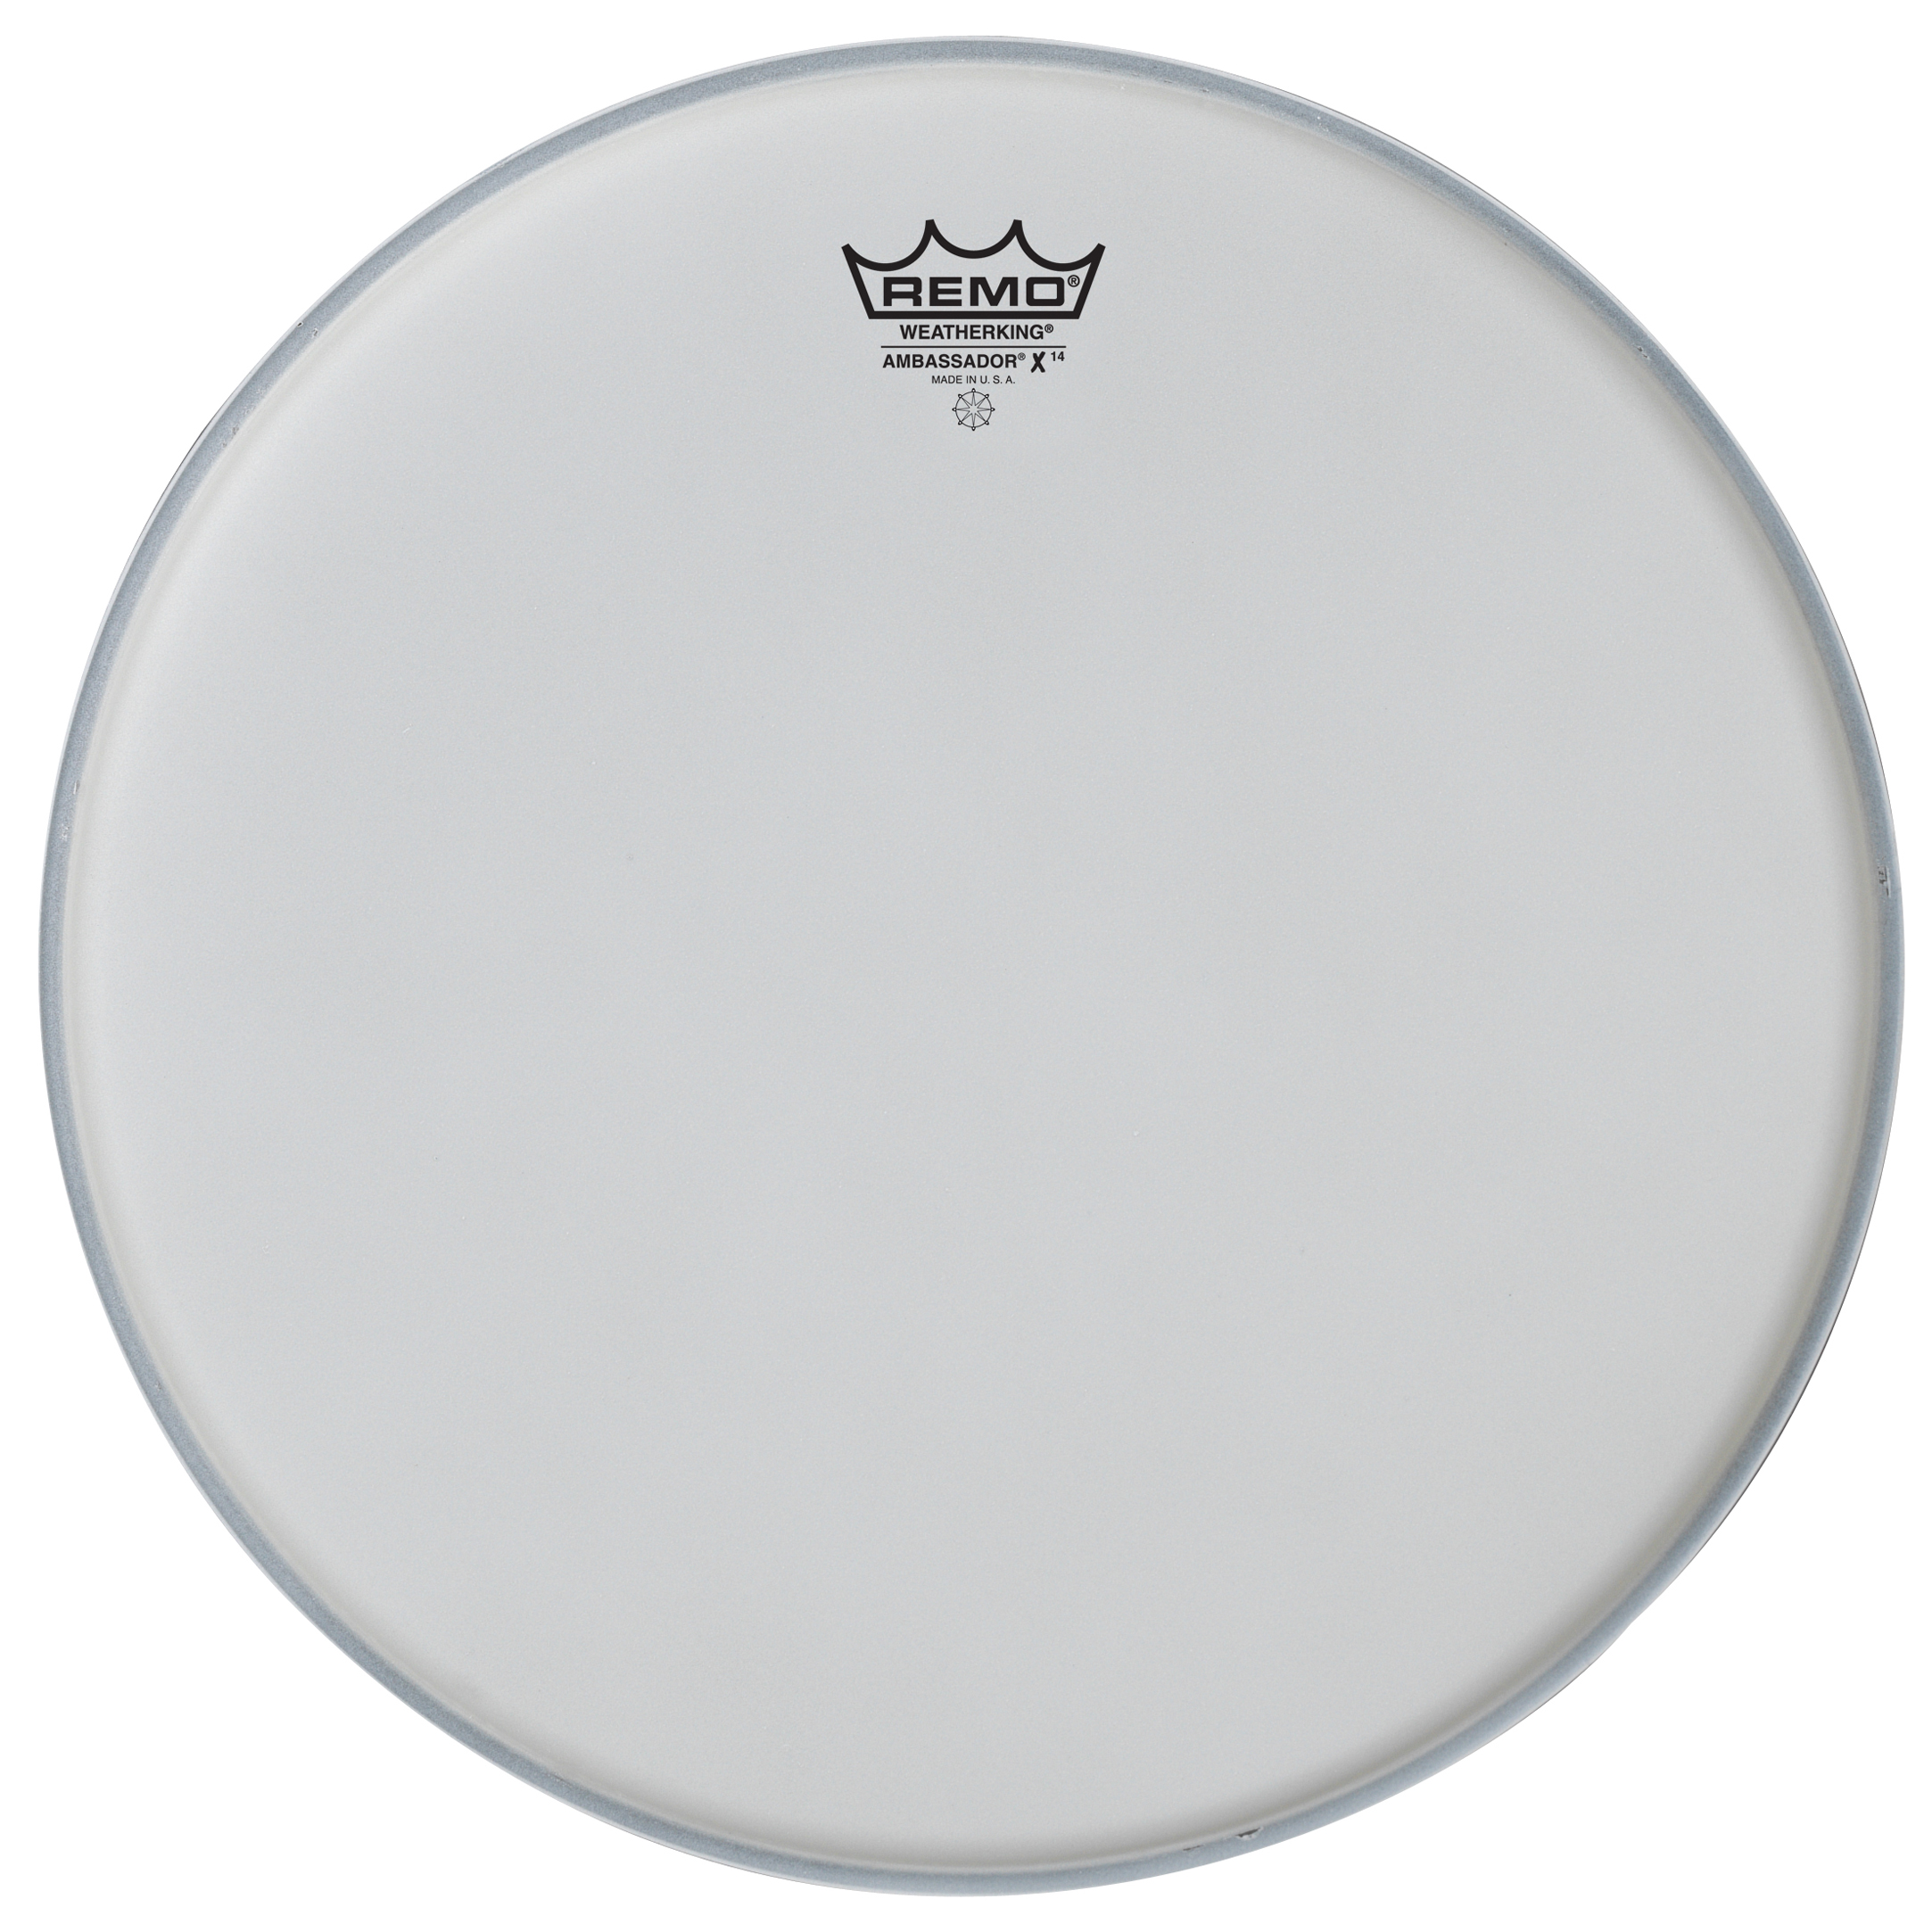 "Remo 13"" Ambassador X14 Coated Drum Head"